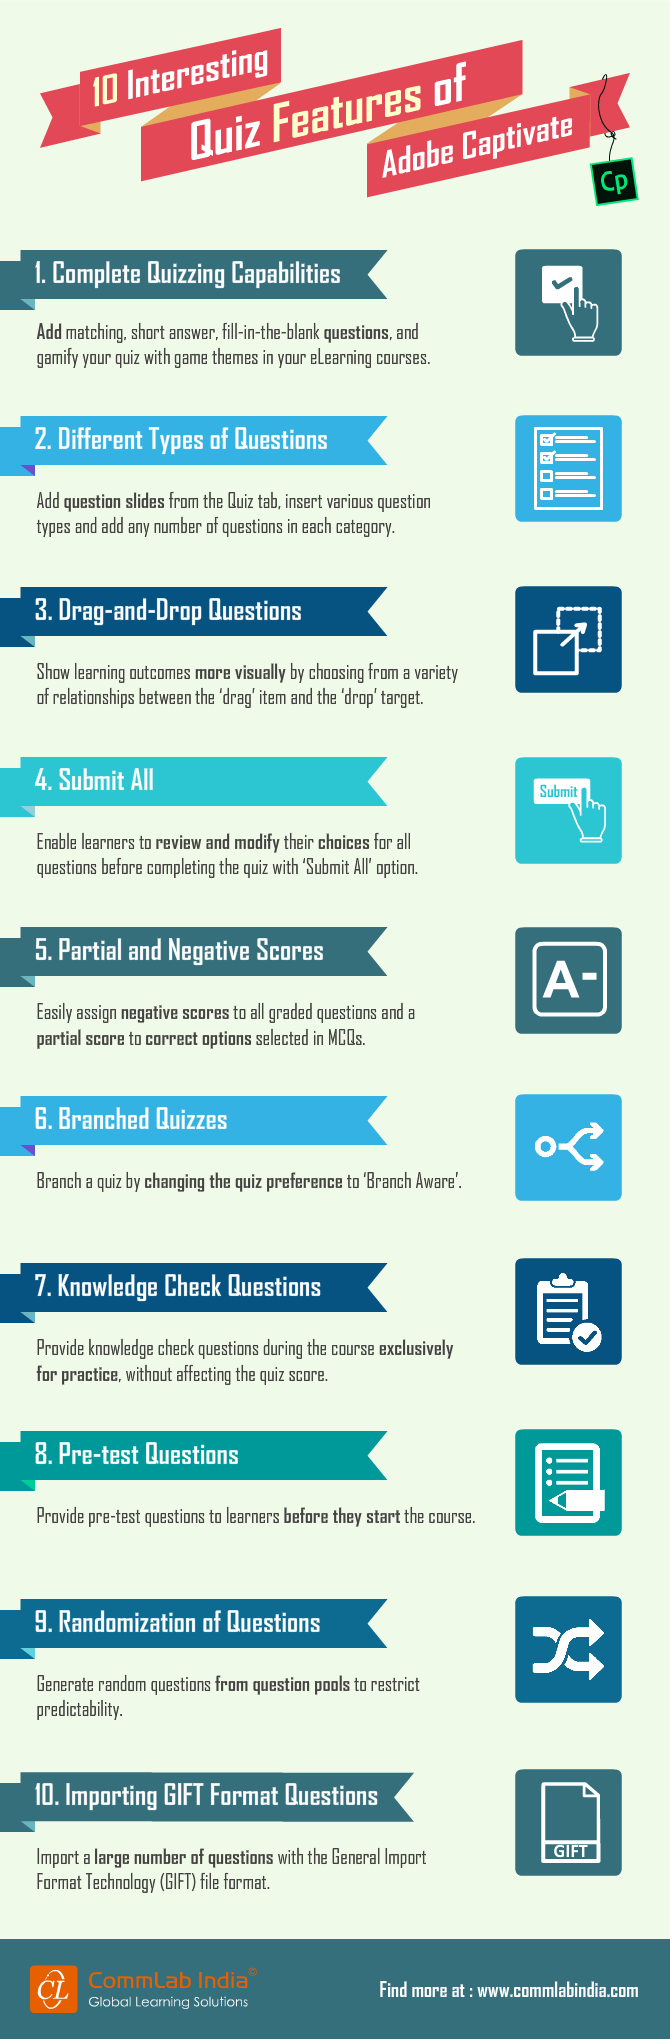 10 Interesting Quiz Features of Adobe Captivate [Infographic]